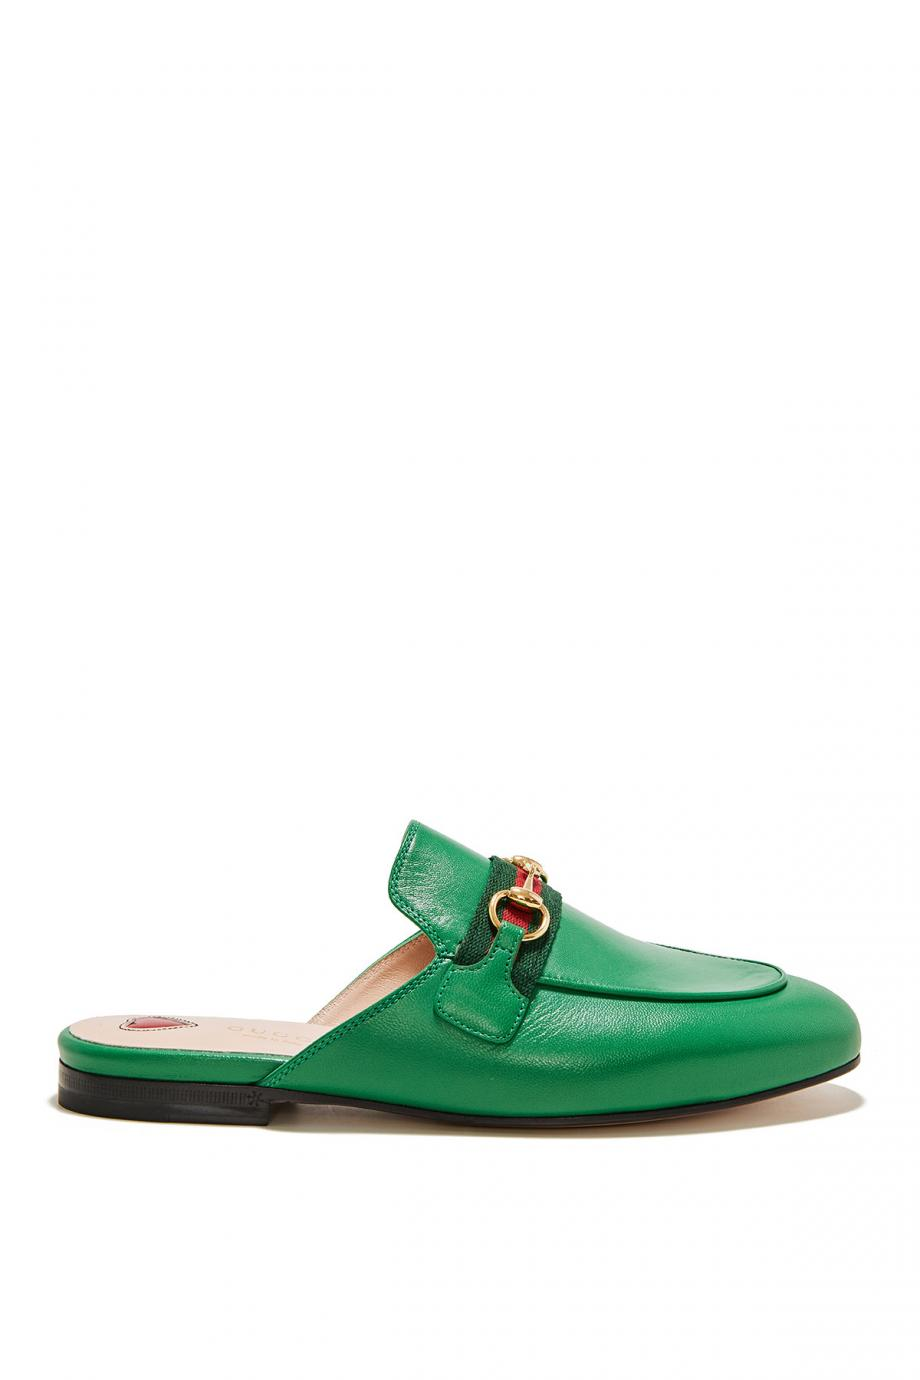 Princetown leather mules